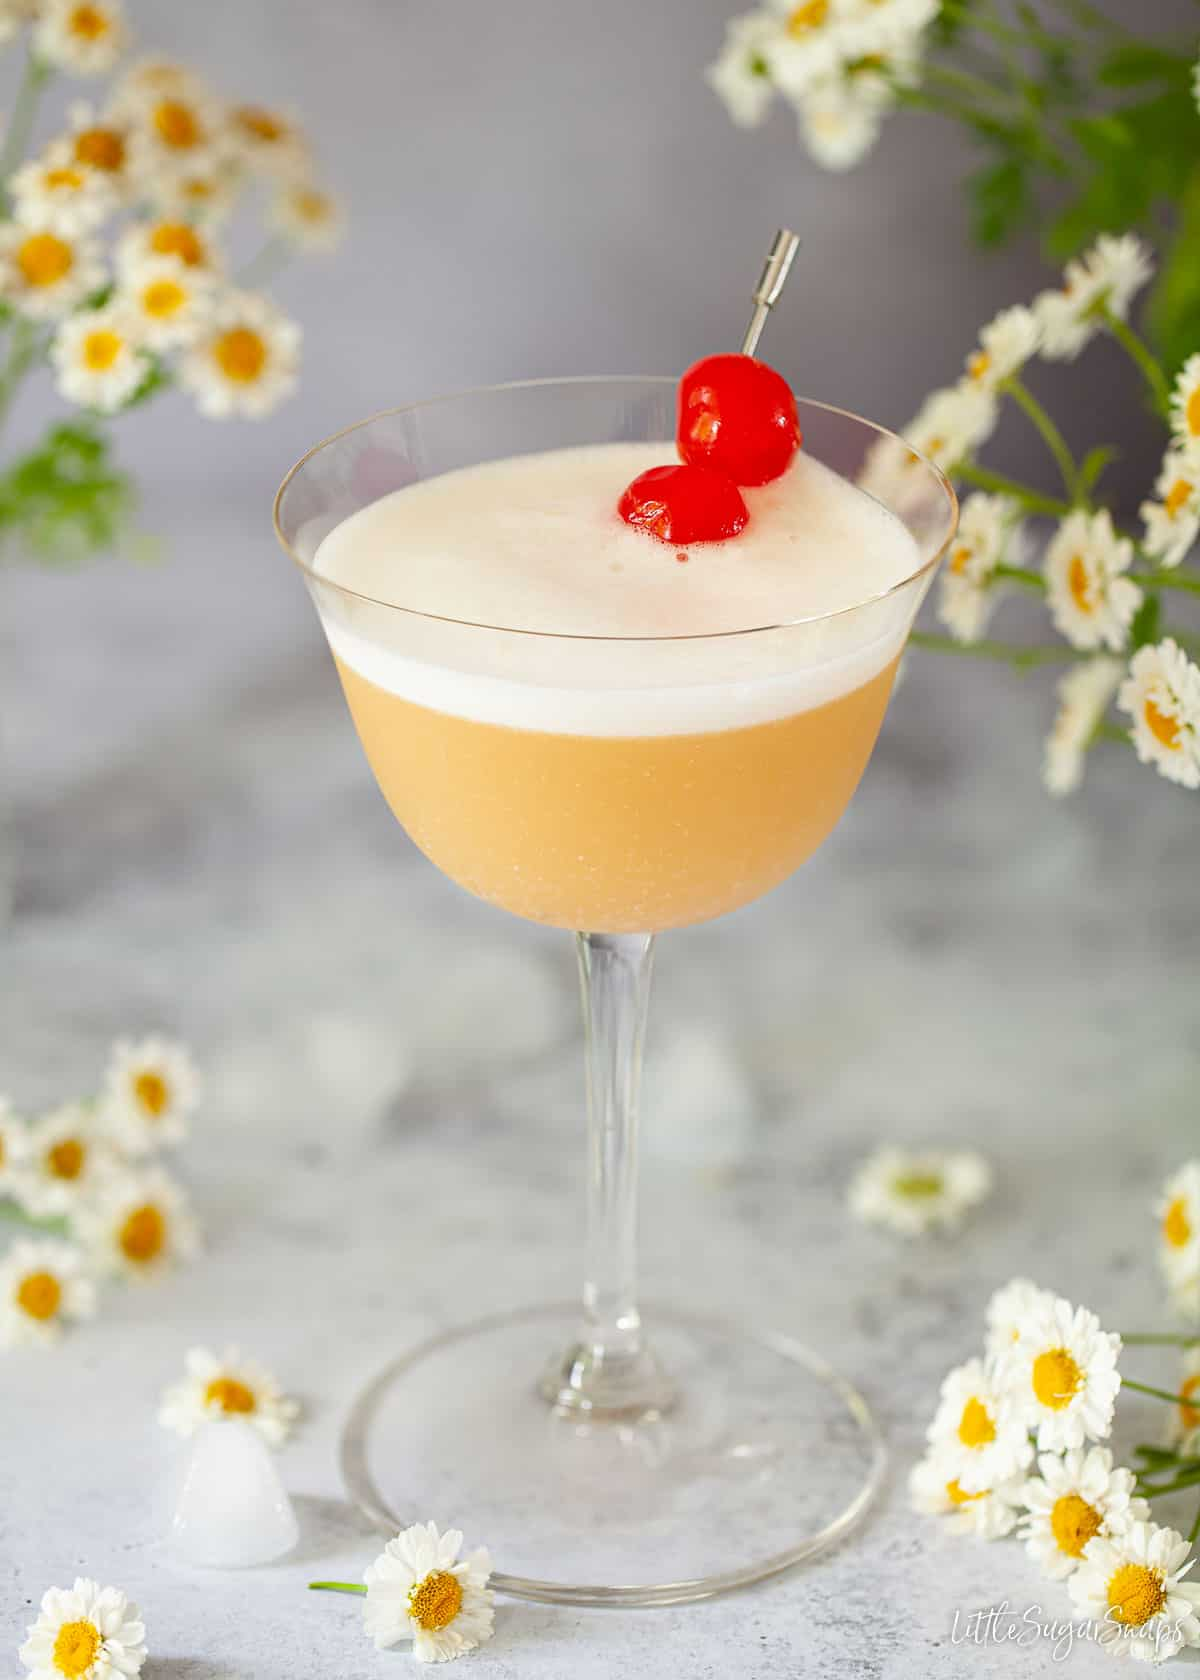 A Disaronno Amaretto sour cocktail garnished with egg white foam and cocktail cherries